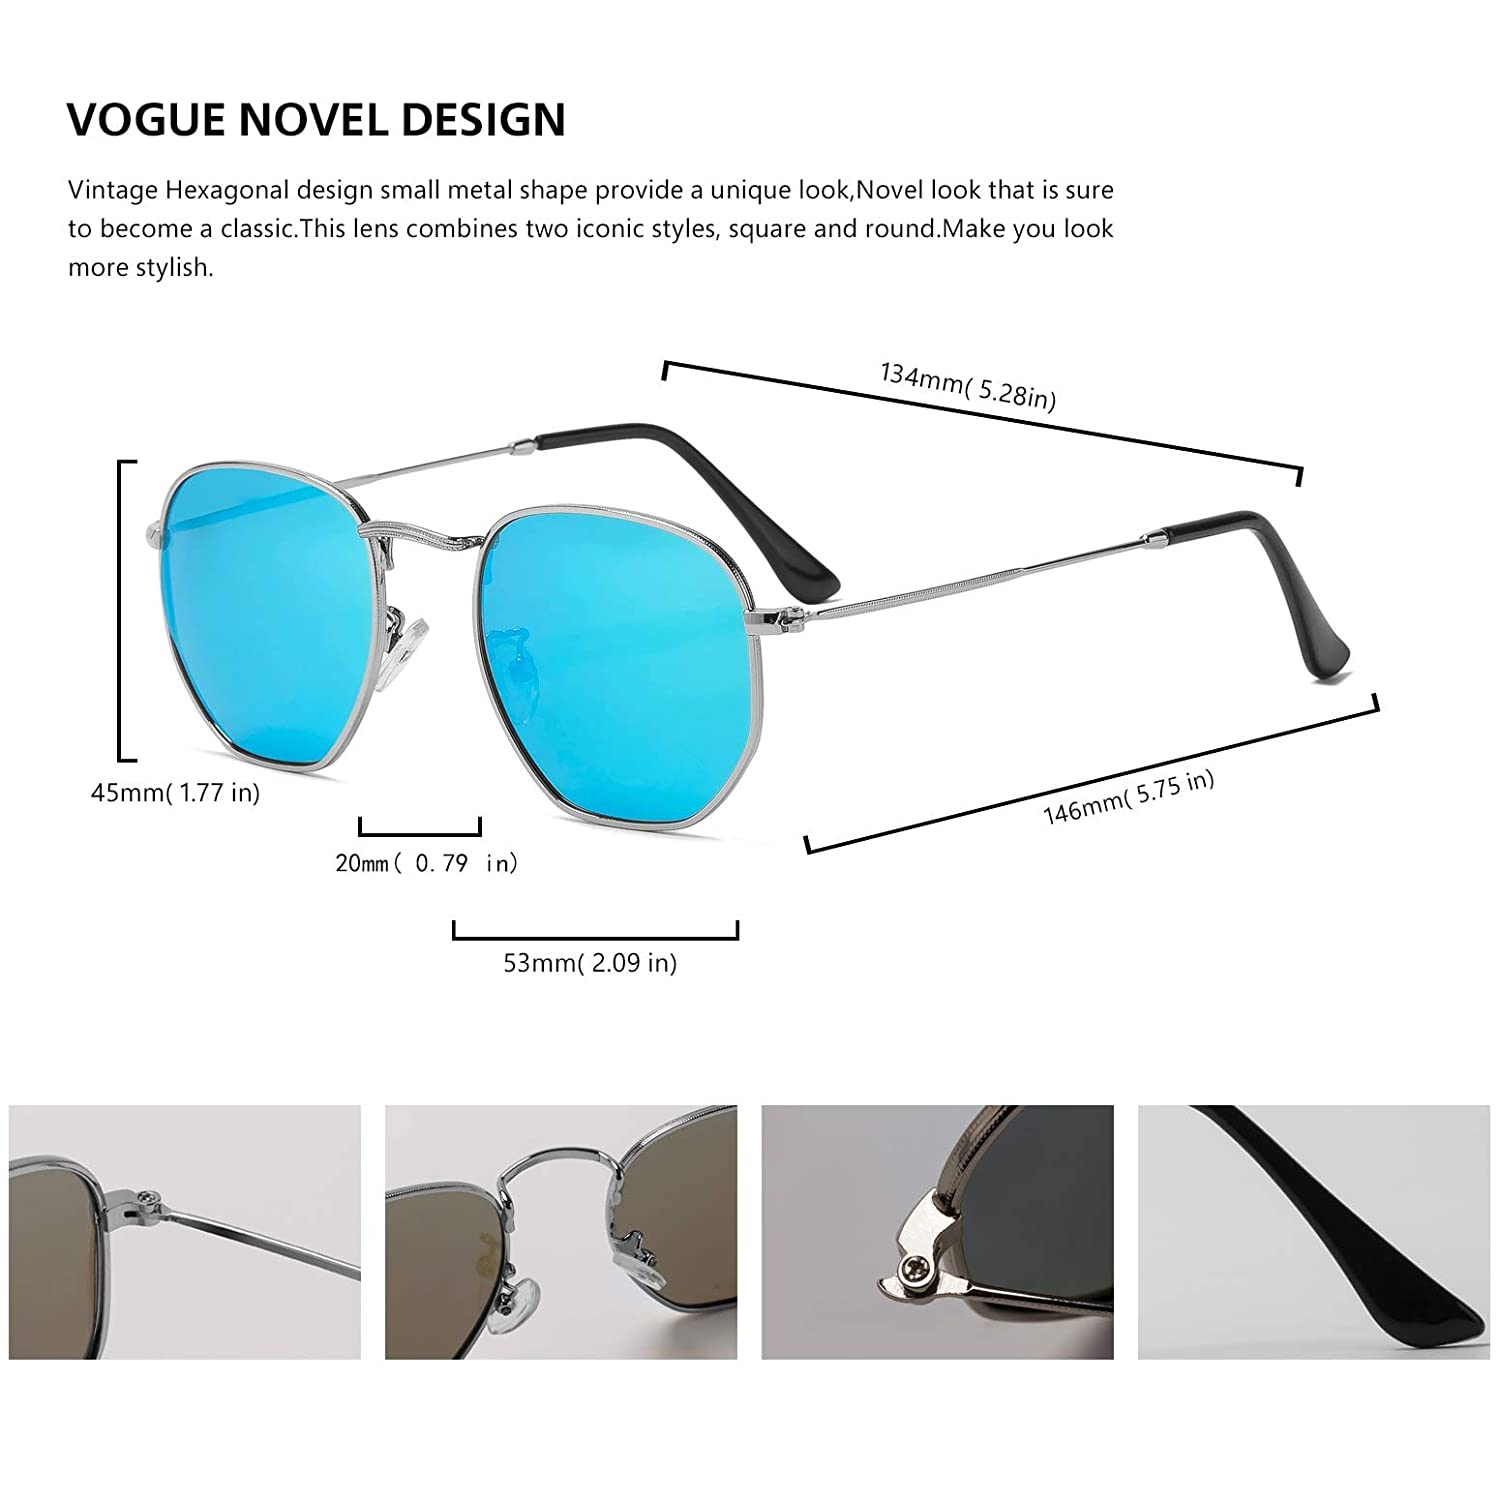 Hipster Hexagonal Polarized Sunglasses Men Women Geometric Square Small Vintage Metal Frame Retro Shade Glasses